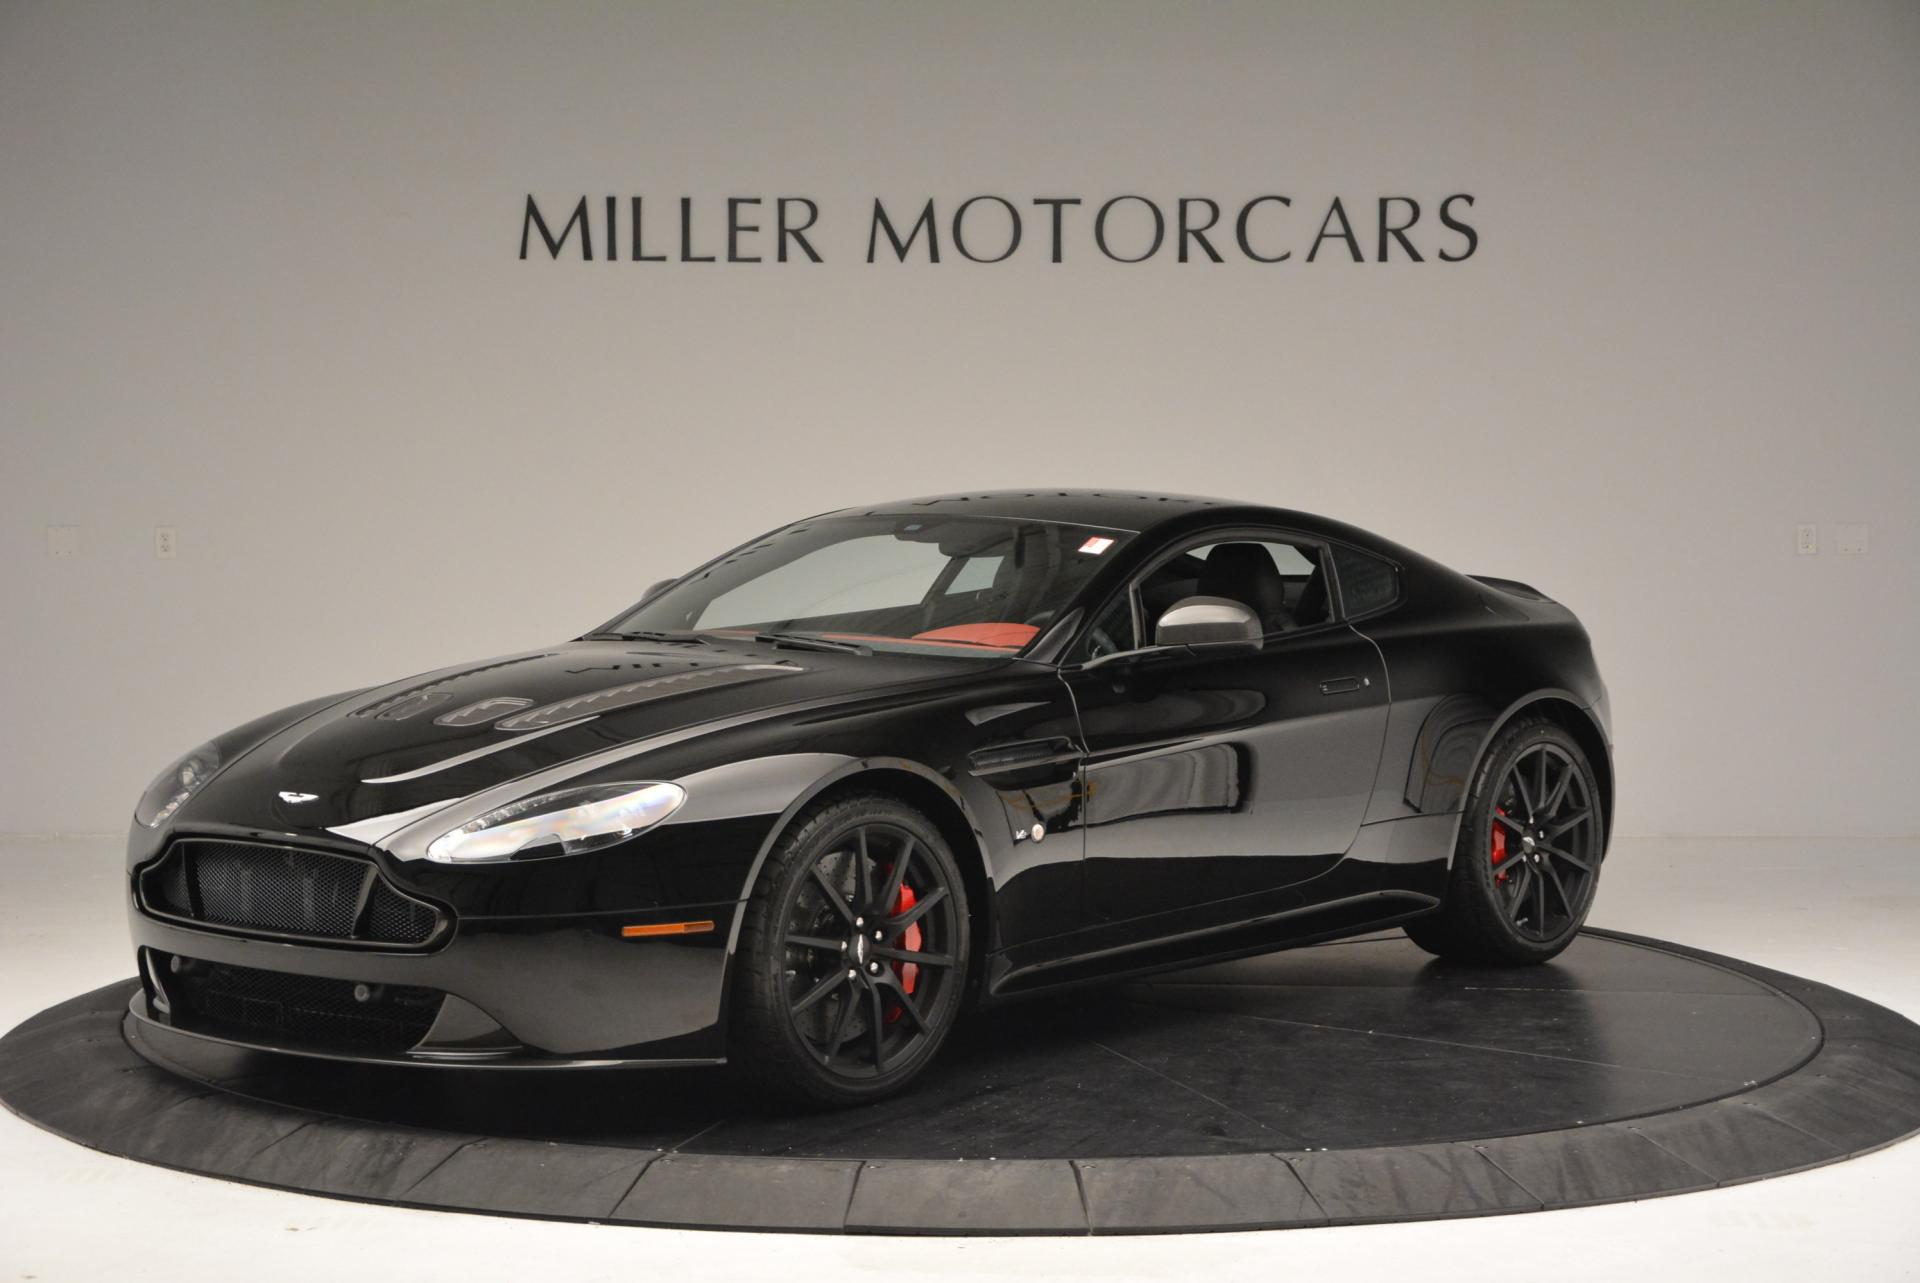 New 2015 Aston Martin V12 Vantage S  For Sale In Westport, CT 103_p2